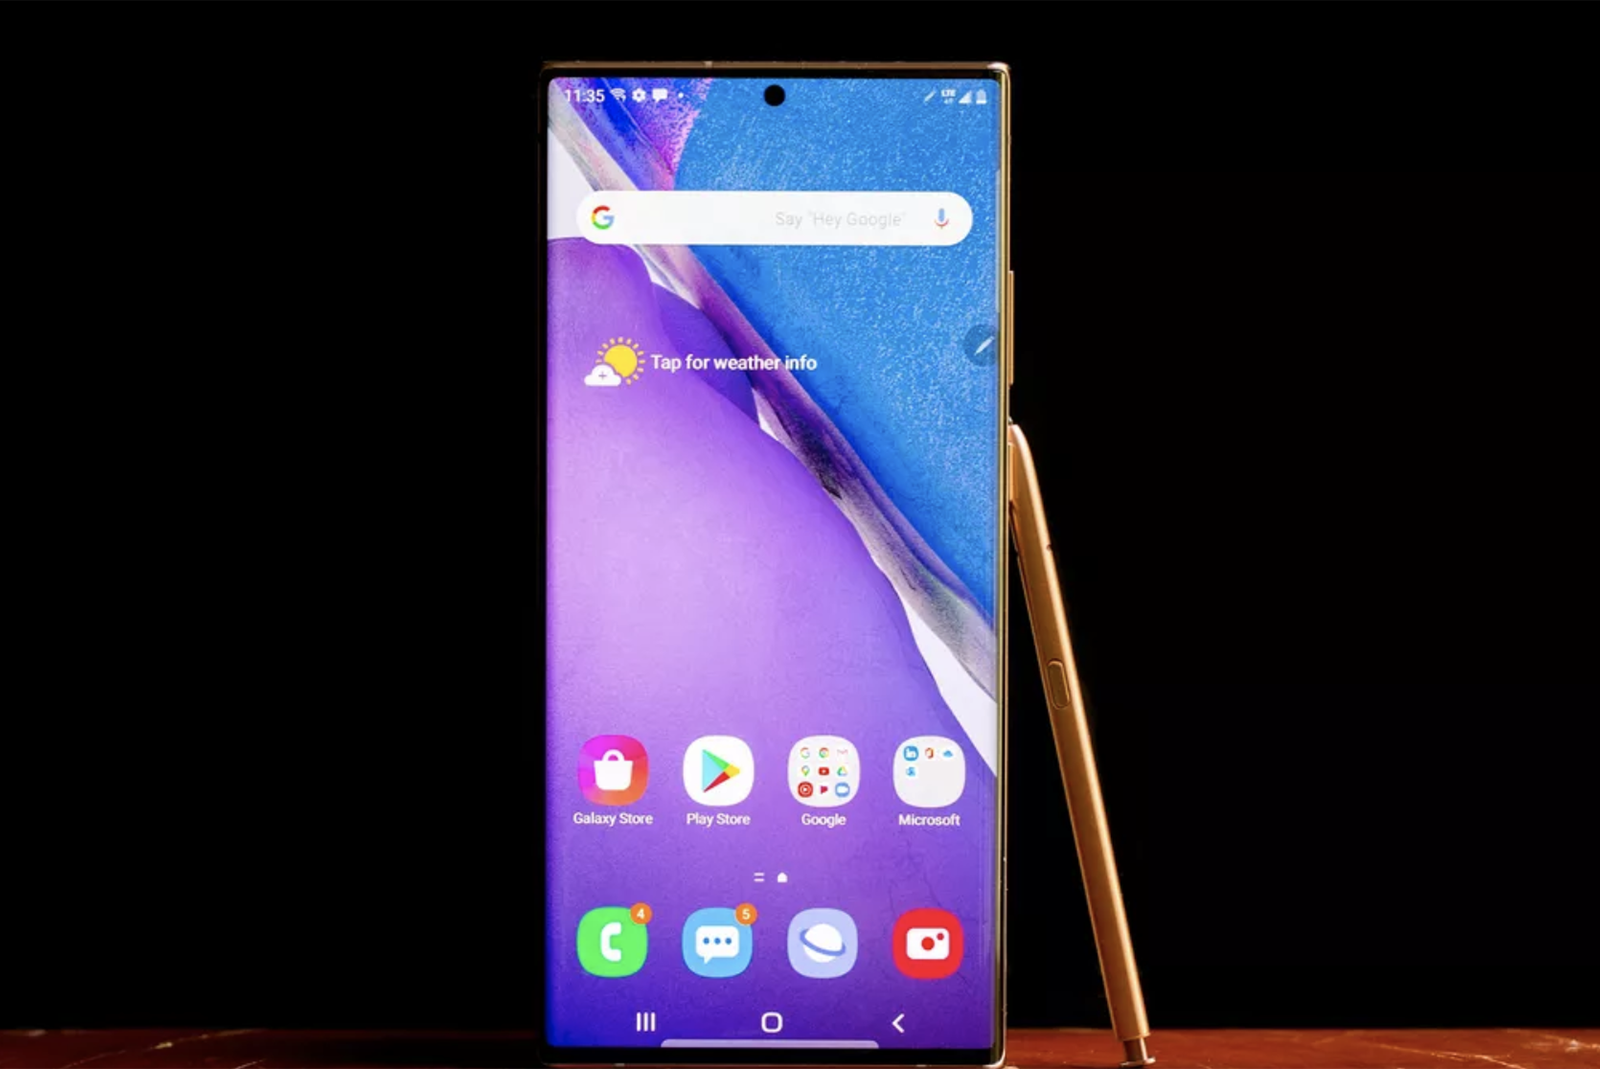 Samsung-Galaxy-Note-20-Ultra-5G-review-colors-best-phones.png